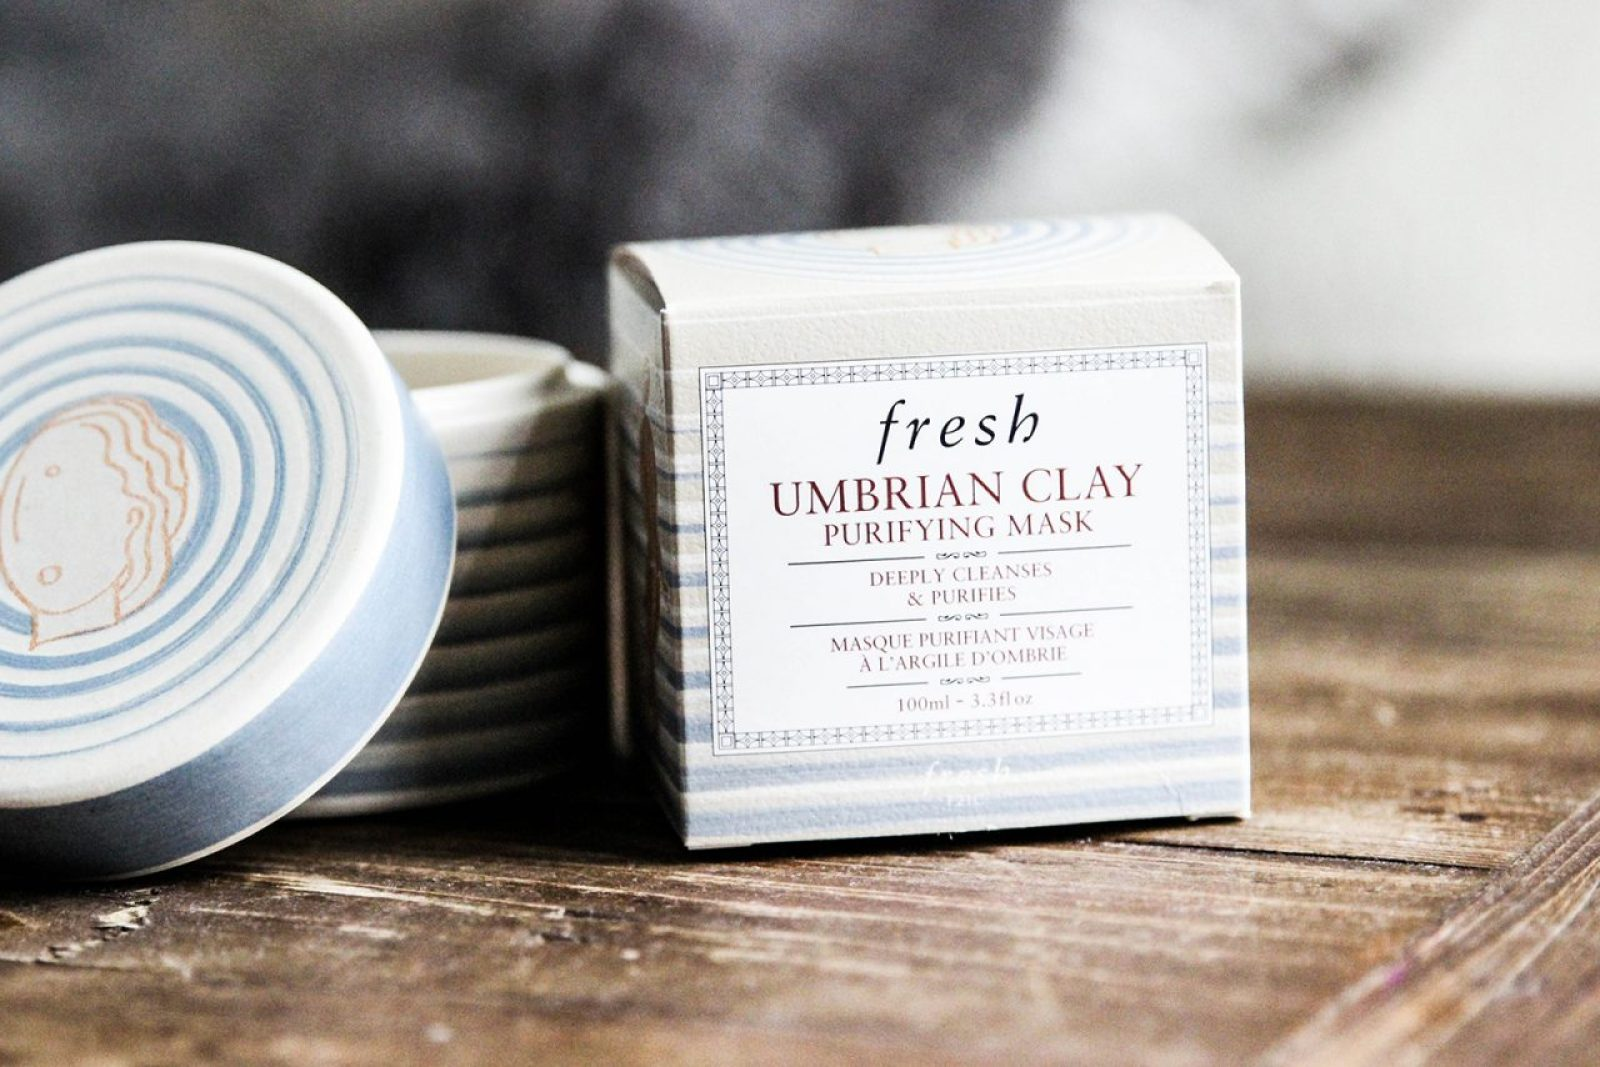 FRESH_Umbrian Clay_Purifying Mask_purifiant_30